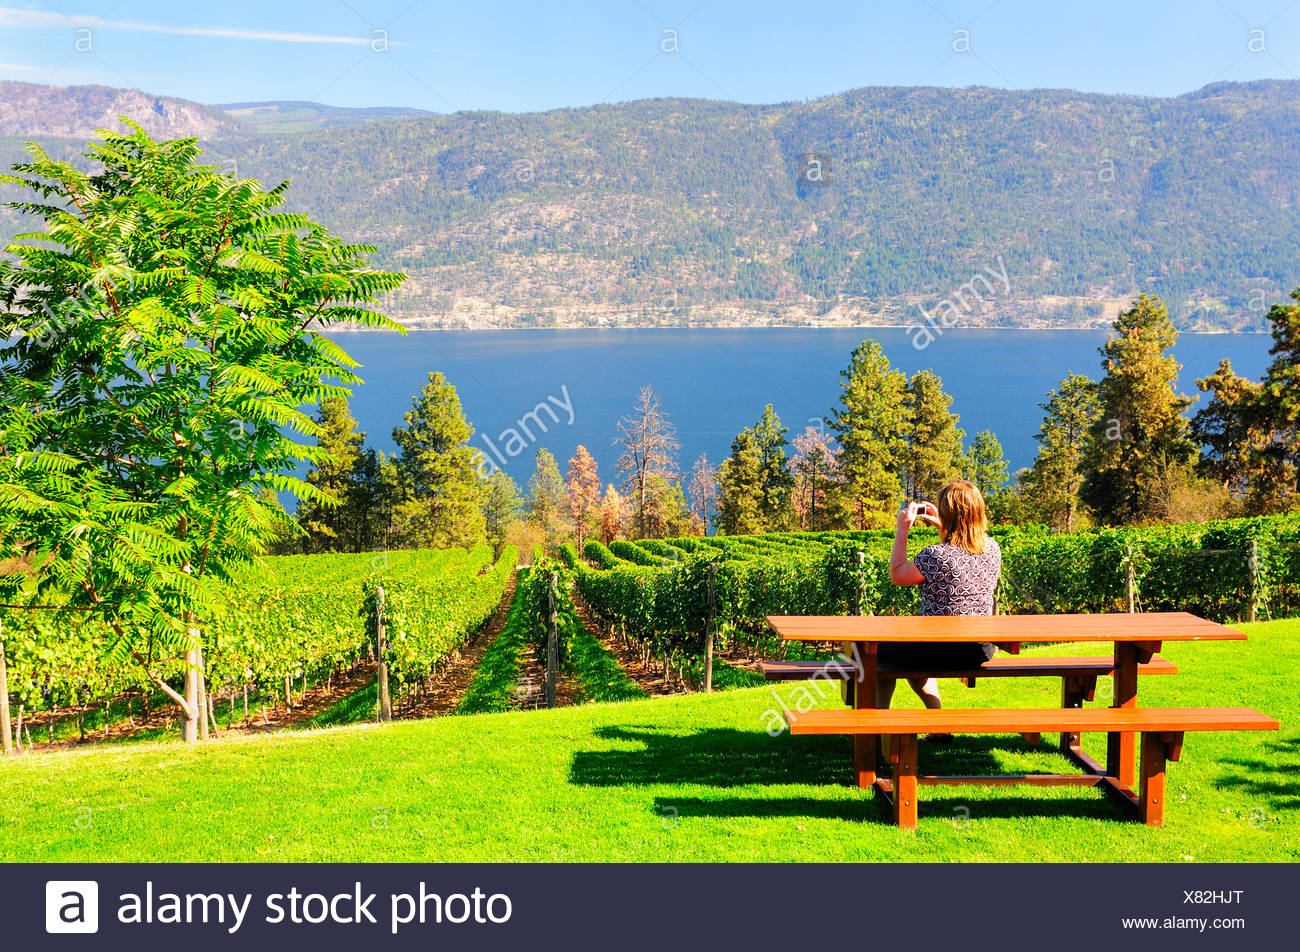 Woman taking pictures Arrowleaf Cellars vineyard & Woman taking pictures Arrowleaf Cellars vineyard Stock Photo ...